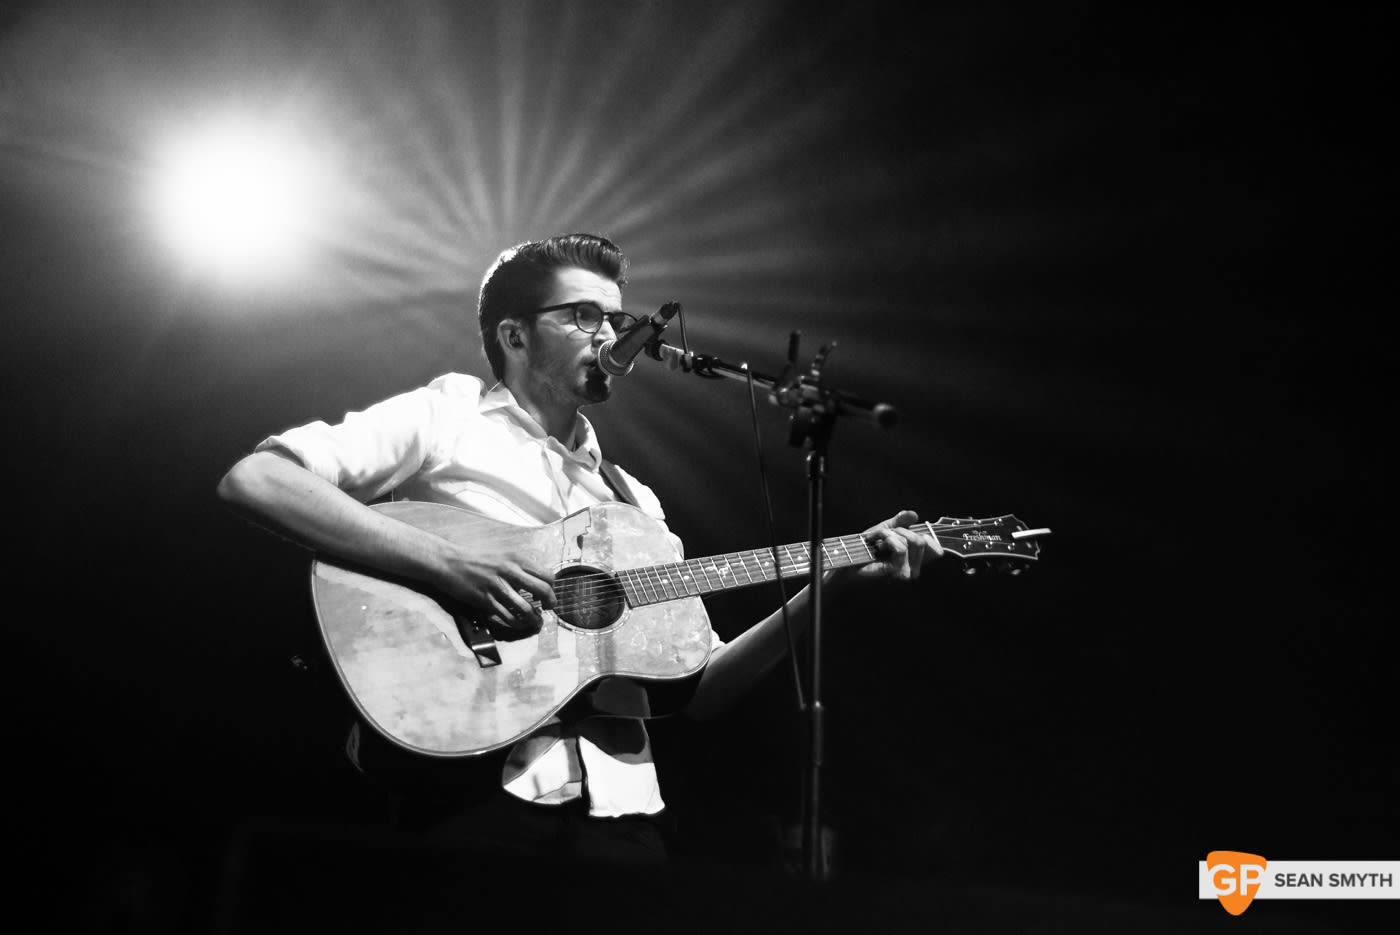 hudson-taylor-at-the-olympia-theatre-26-2-15-by-sean-smyth-10-of-26_16569368080_o